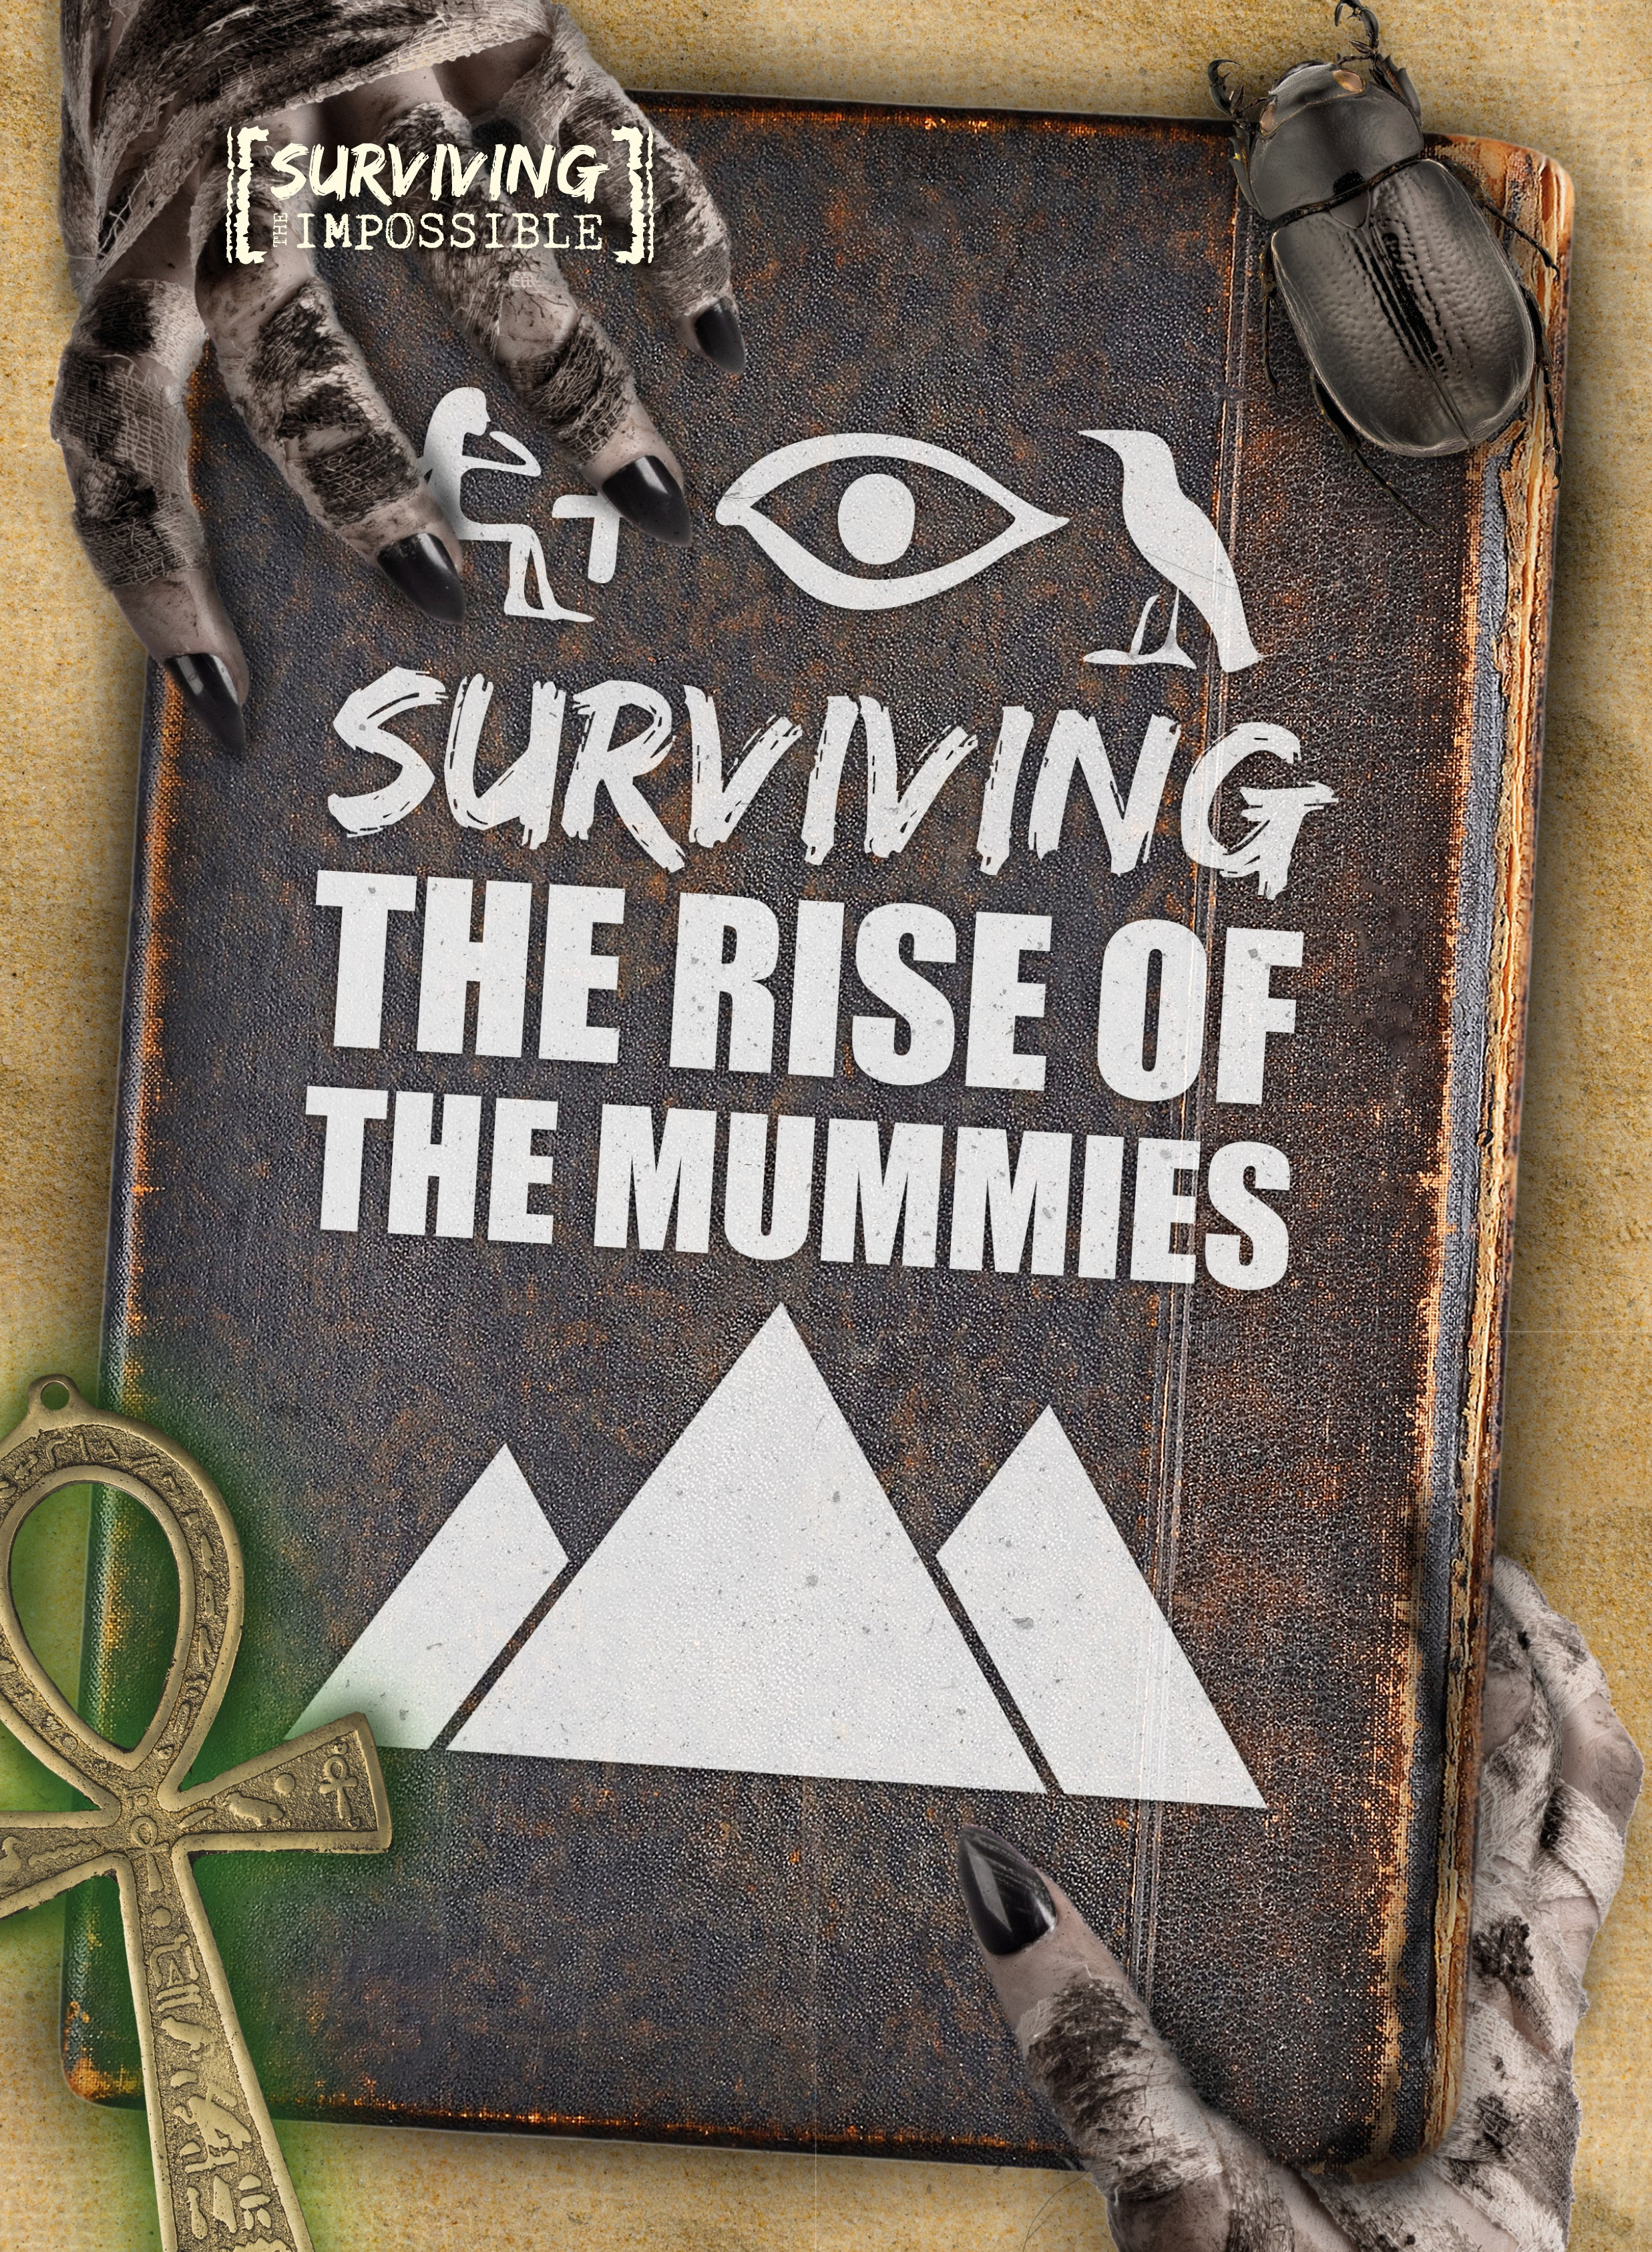 Surviving the rise of the mummies ISBN 9781912502219